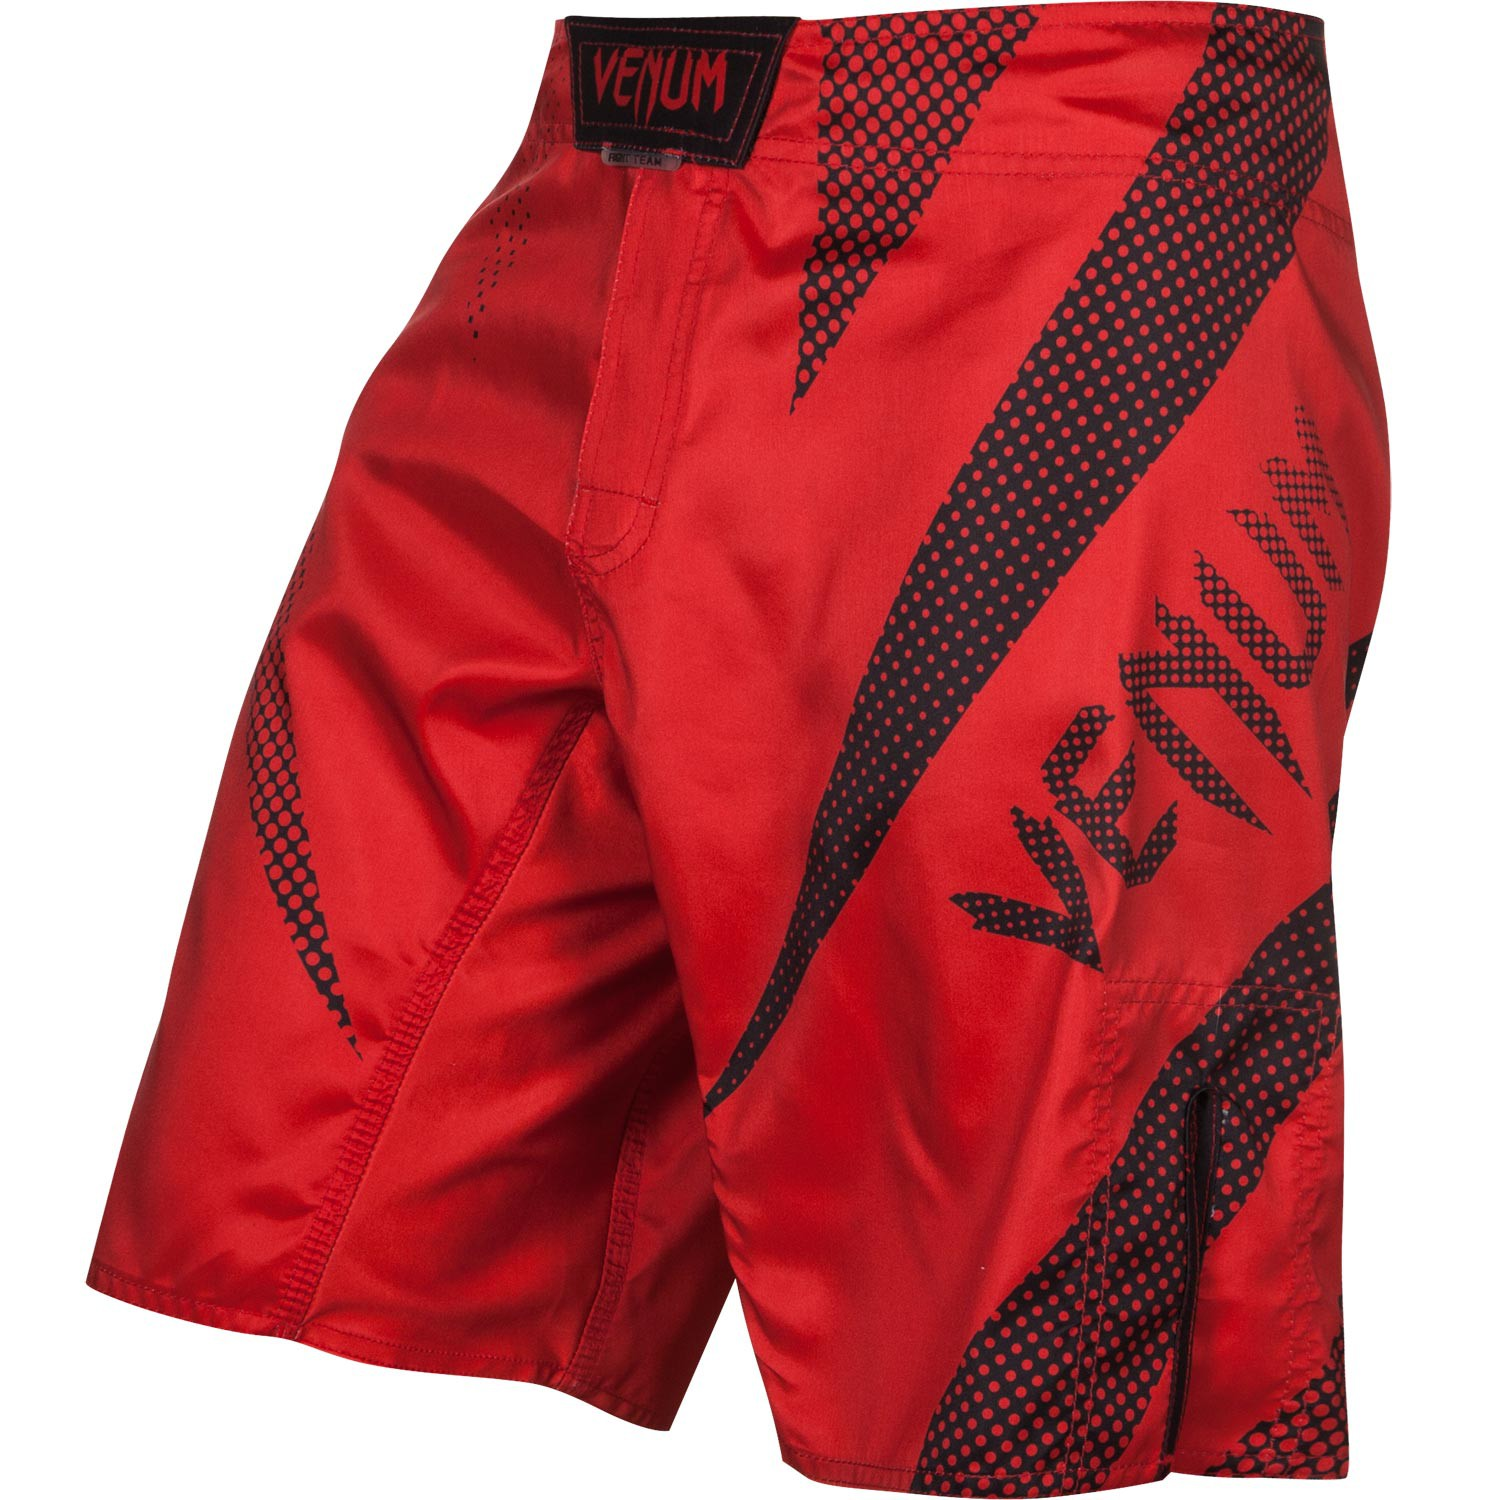 Купить Шорты Venum Jaws Fightshorts - Red, 4425_rd